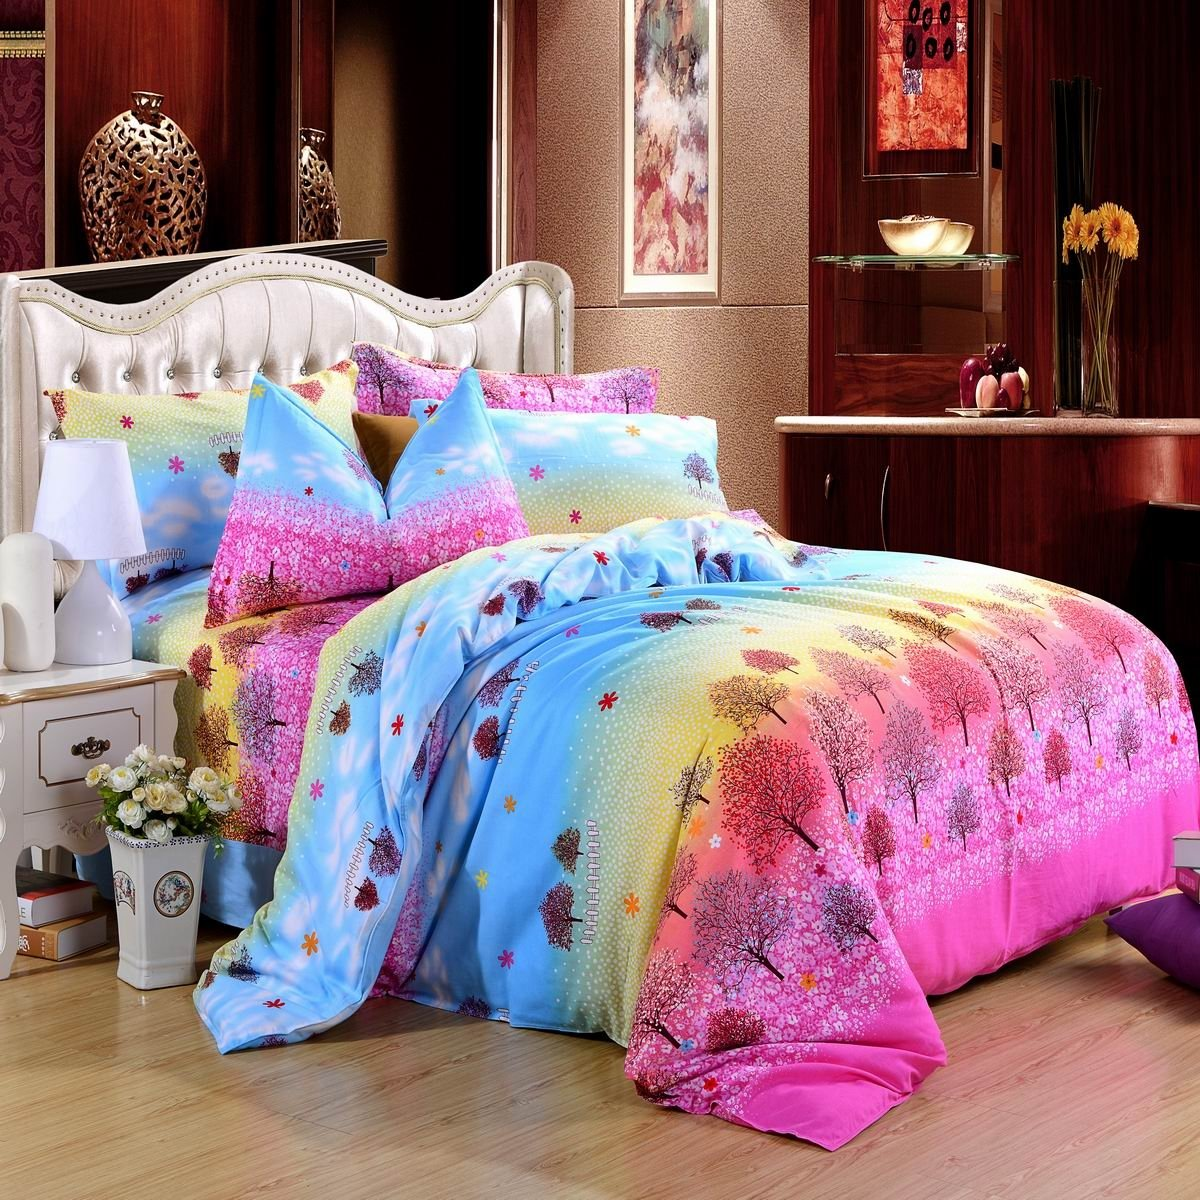 Aqua Blue Pink and Yellow Birch Tree Print Bright Colorful Rustic Scene 100% Brushed Cotton Full, Queen Size Bedding Sets